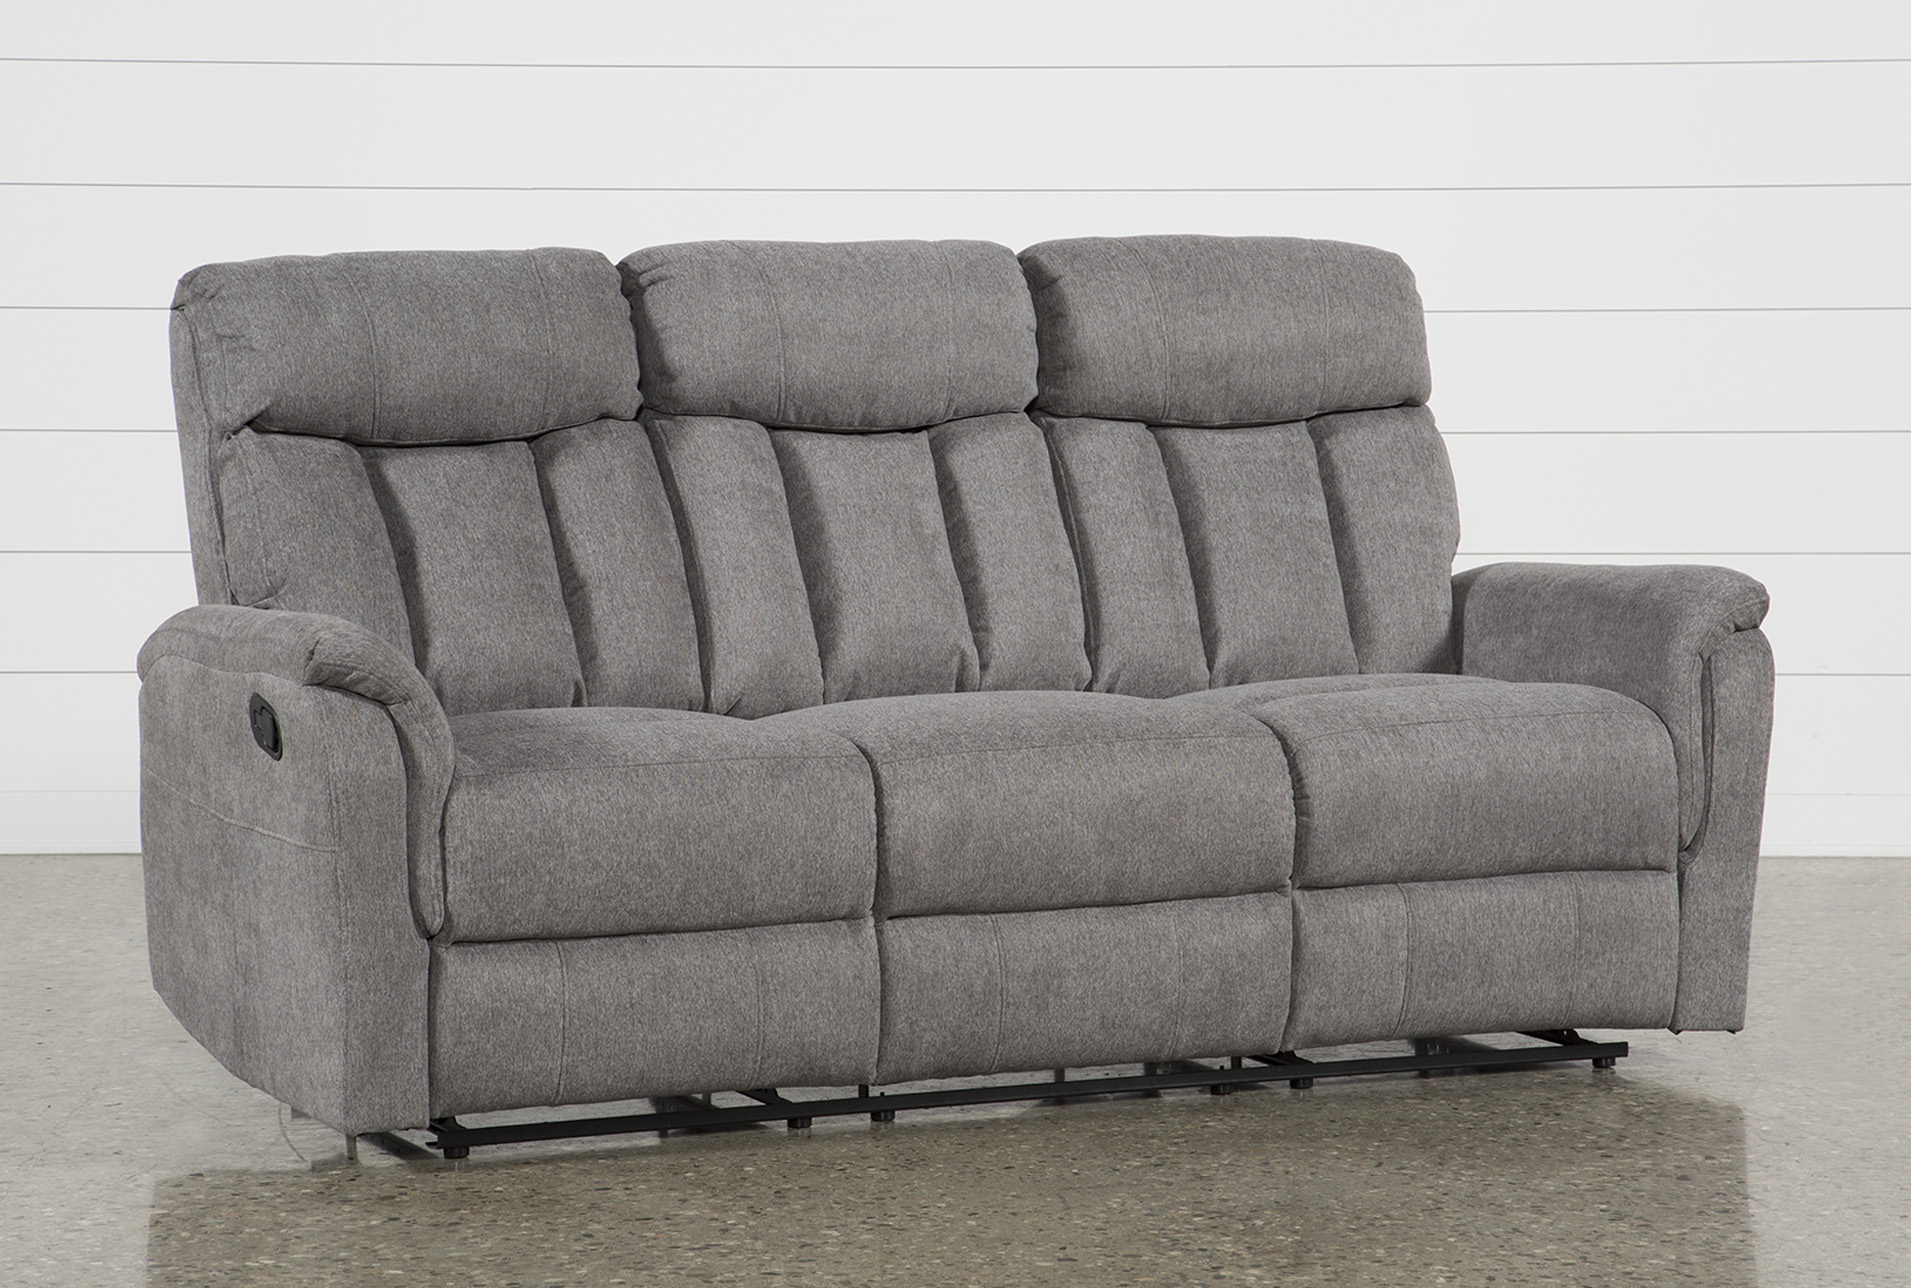 Suzy Dark Grey Reclining Sofa (Qty: 1) has been successfully added to your  Cart.